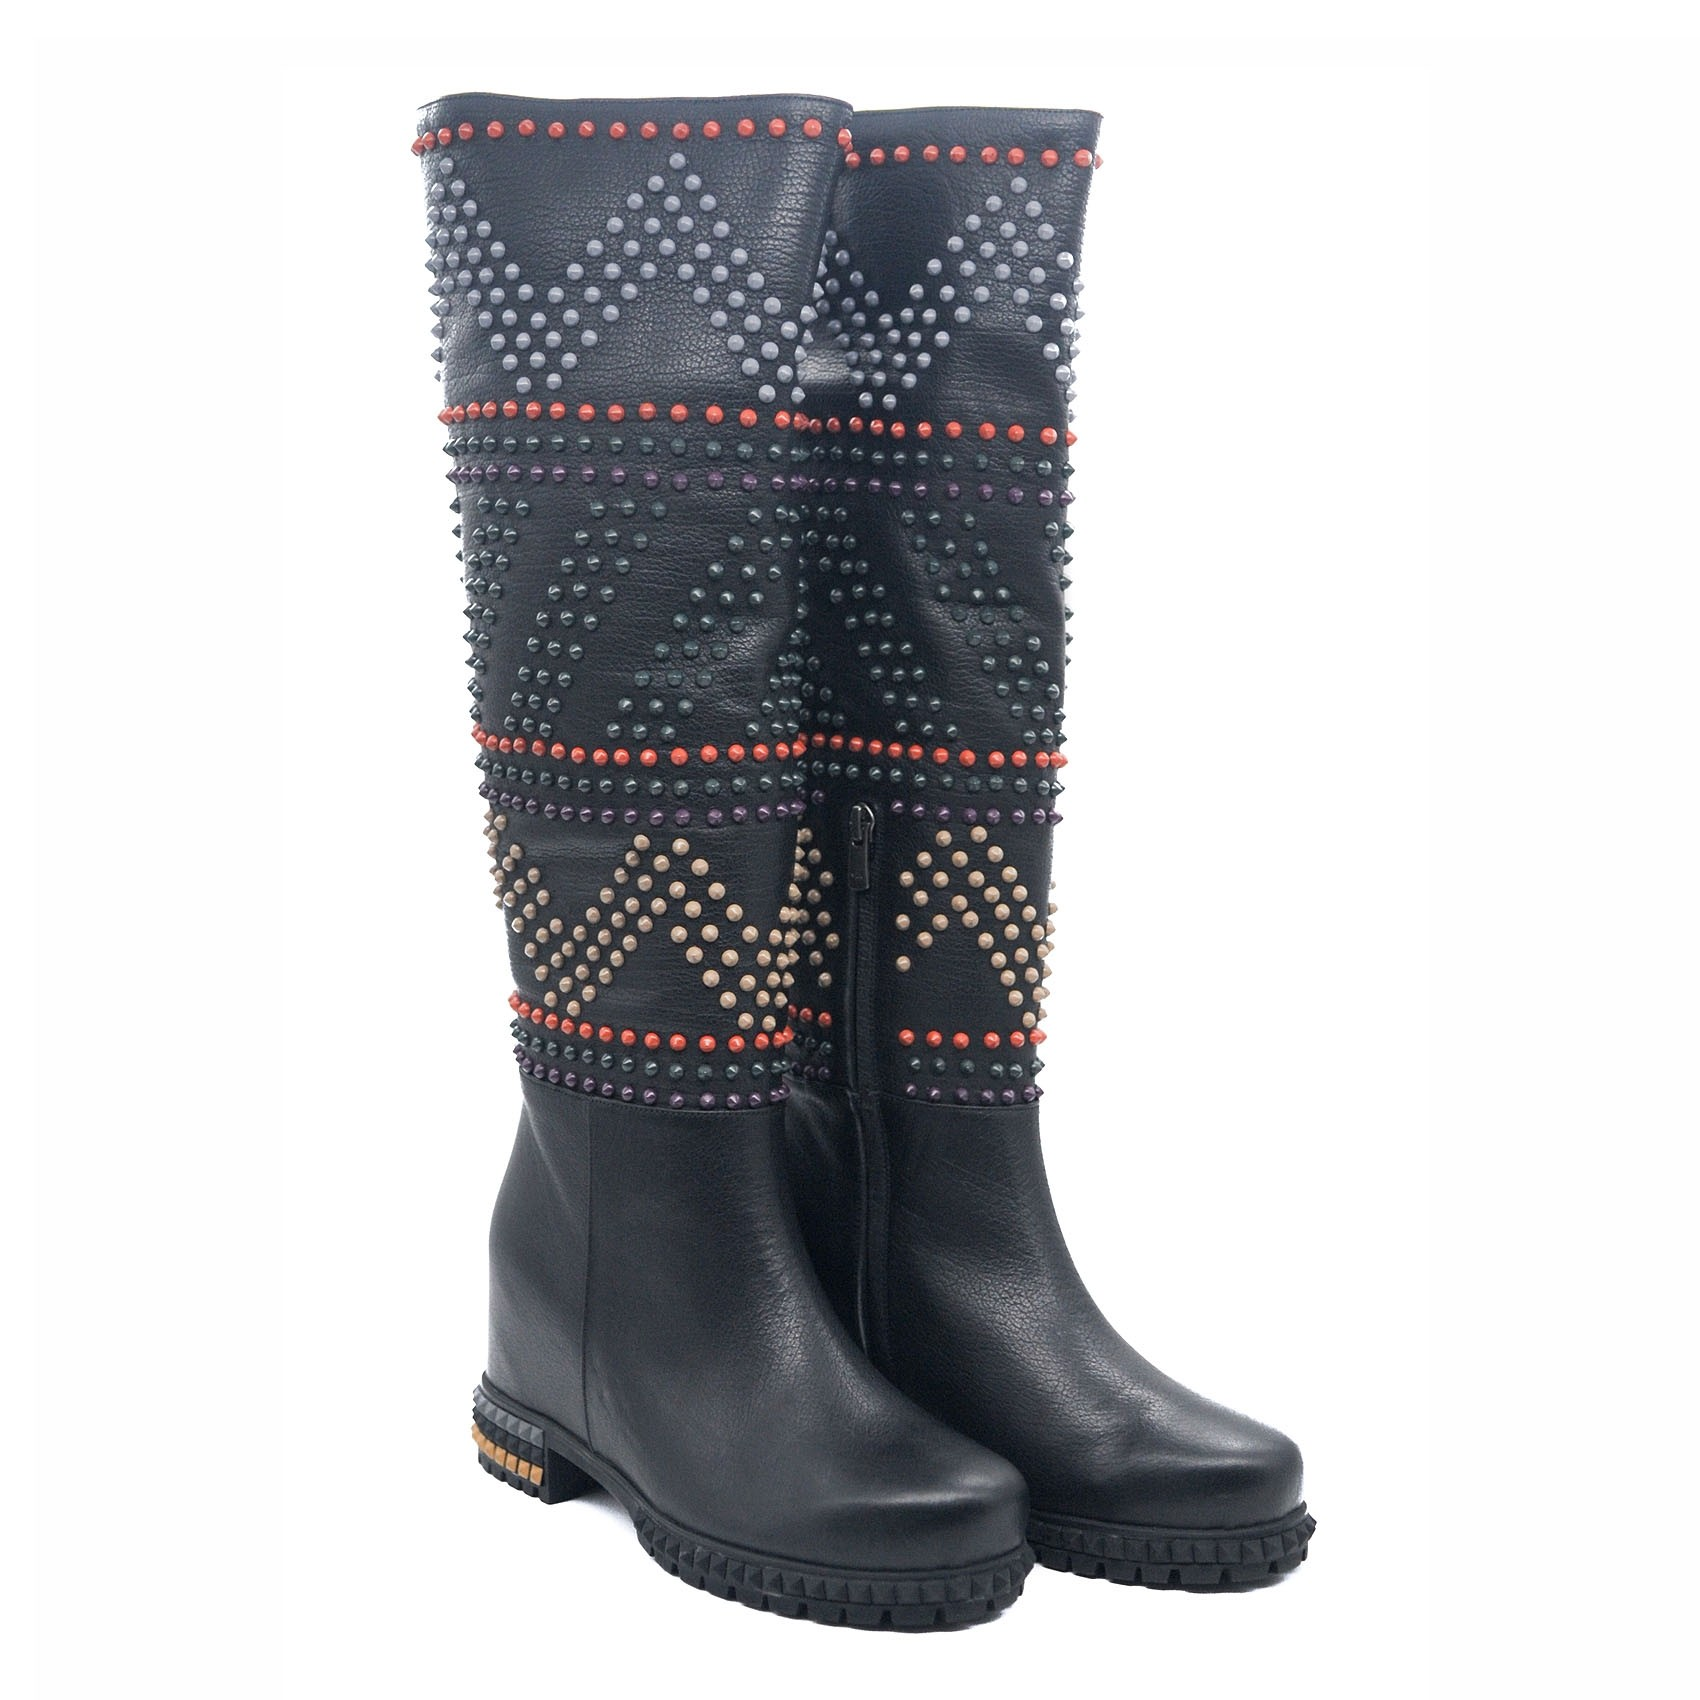 Goody2shoes Black Leather Ladies Boots with Coloured Stud Design